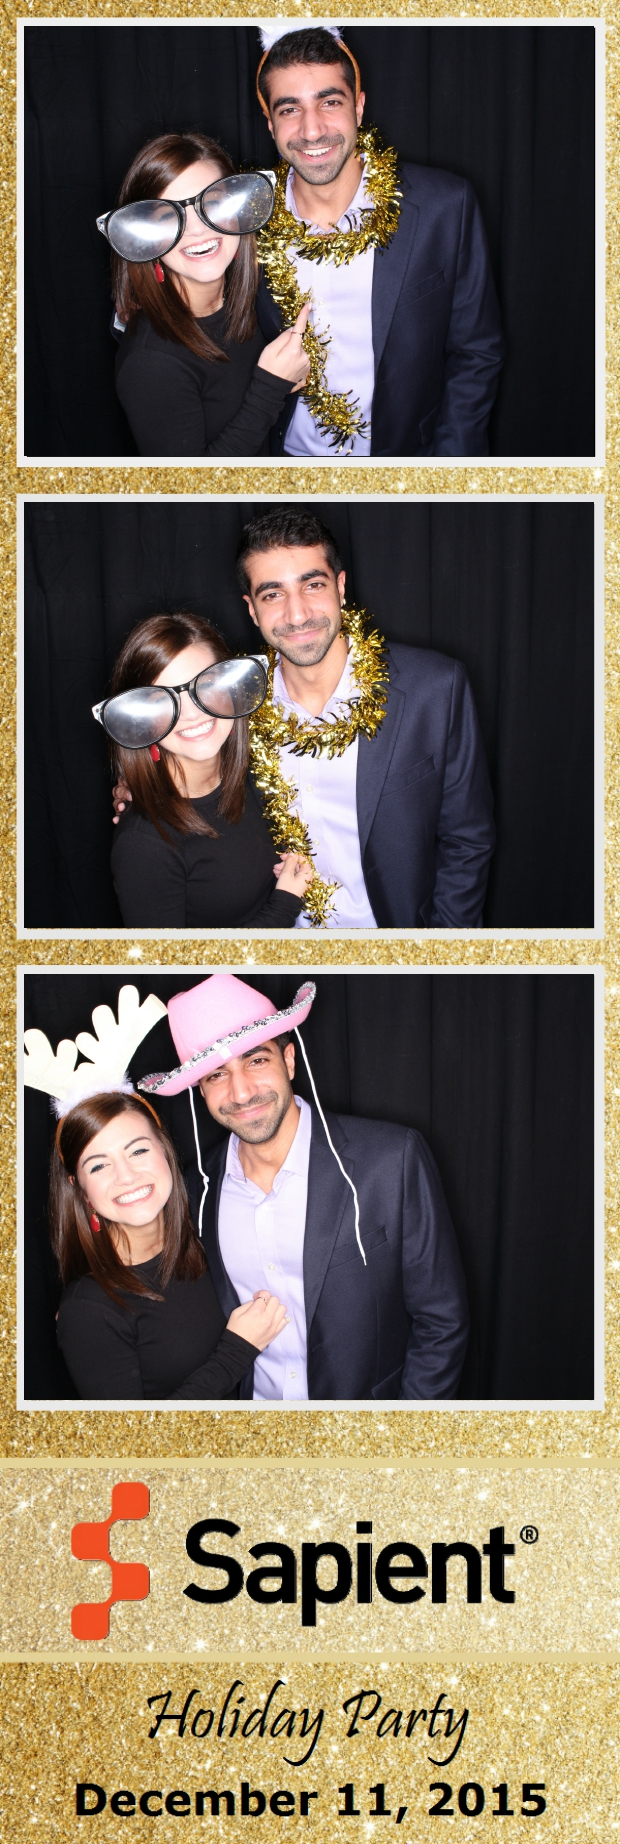 Guest House Events Photo Booth Sapient Holiday Party (19).jpg